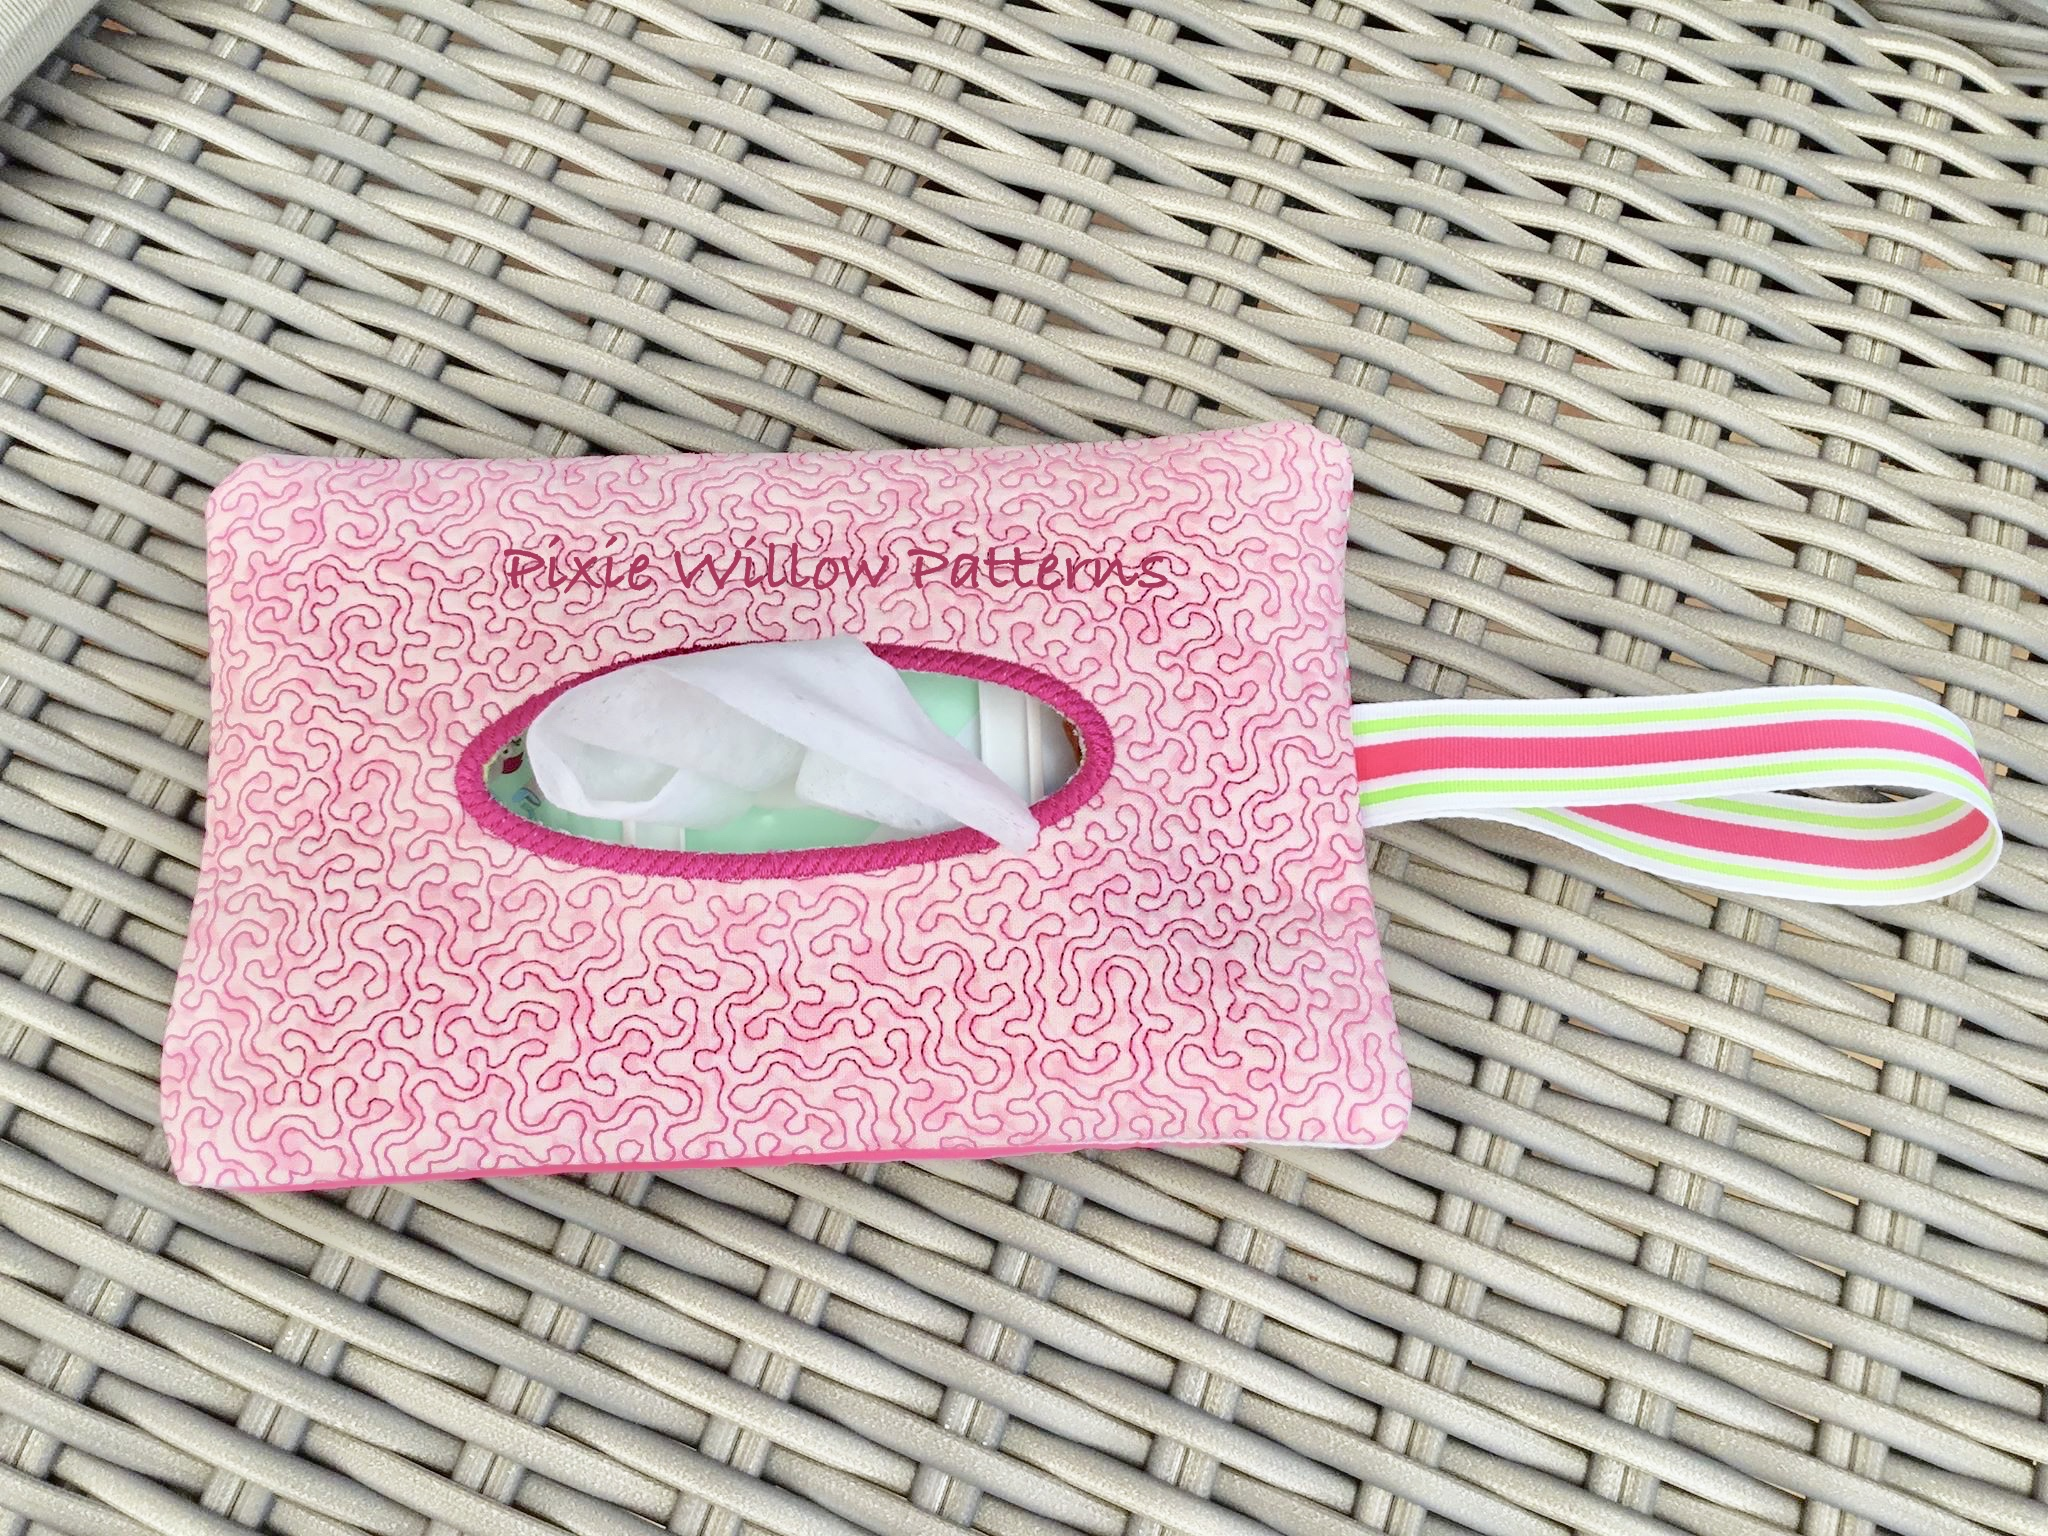 ITH Stipple Pattern Baby Wipe / Diaper holder bag  6×10 In The Hoop  Project  Nappy and Wet Wipe Bag